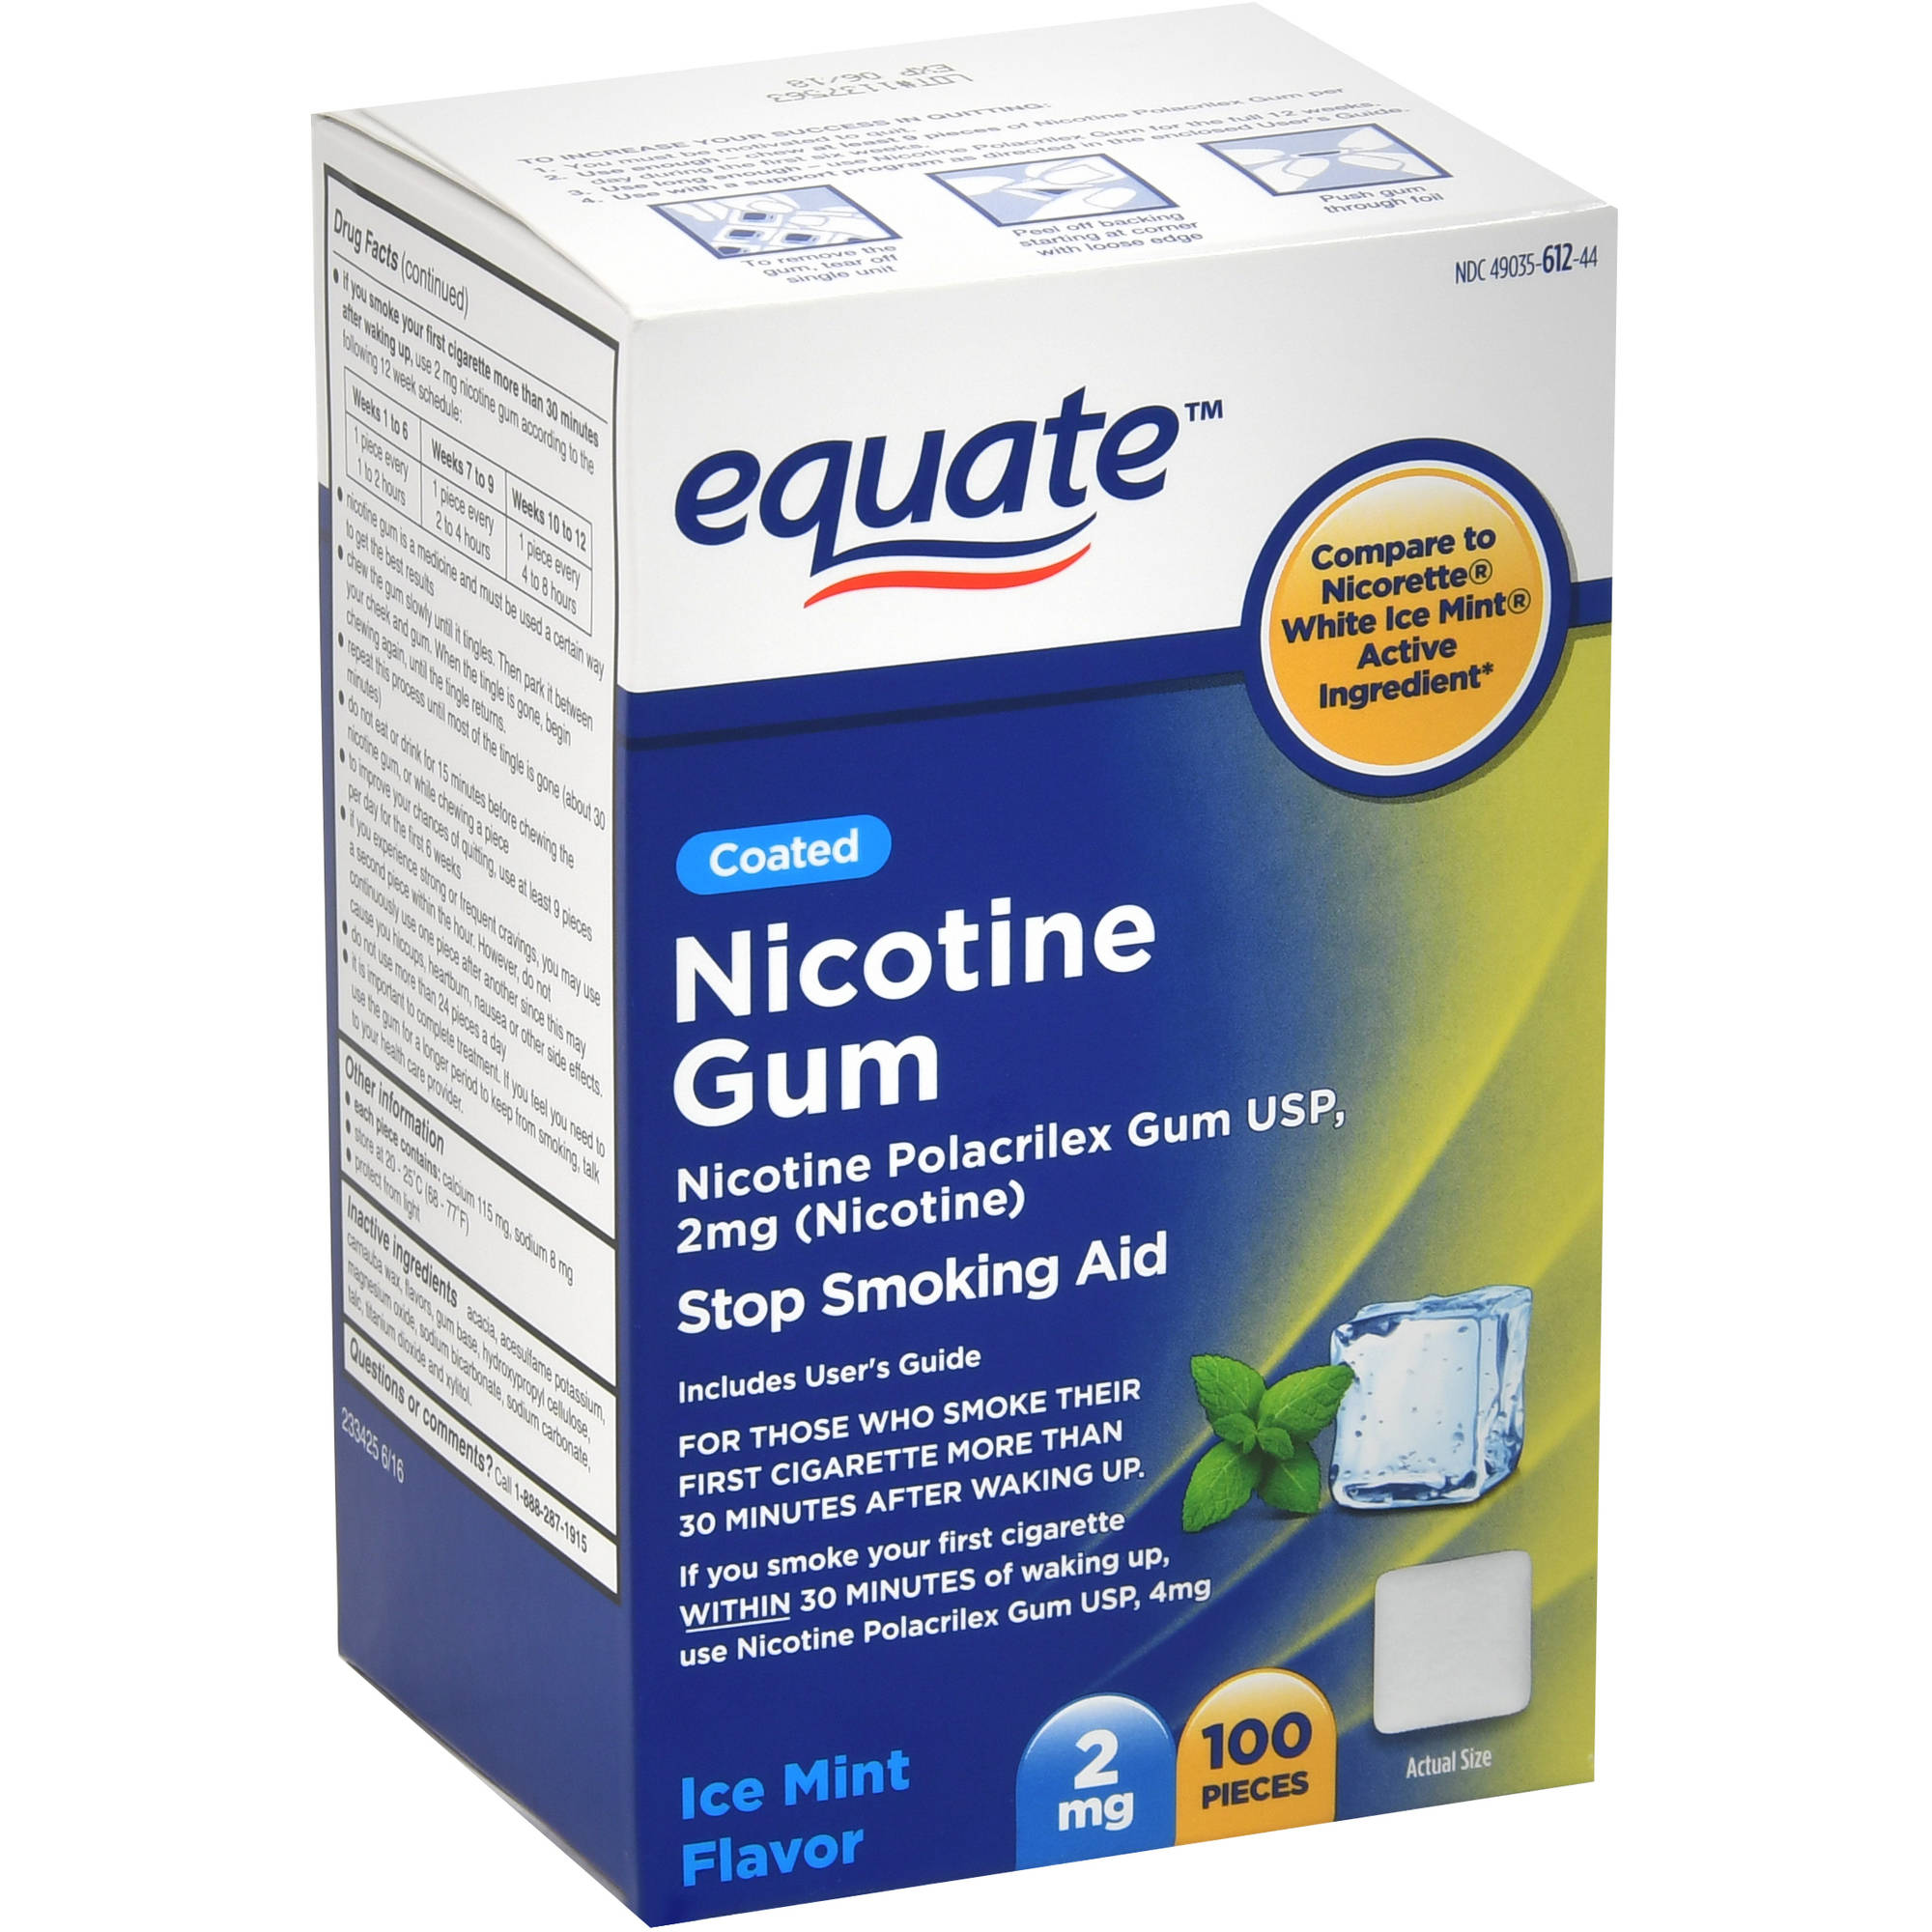 Equate Coated Nicotine Ice Mint Gum, 2 mg, 100 Ct